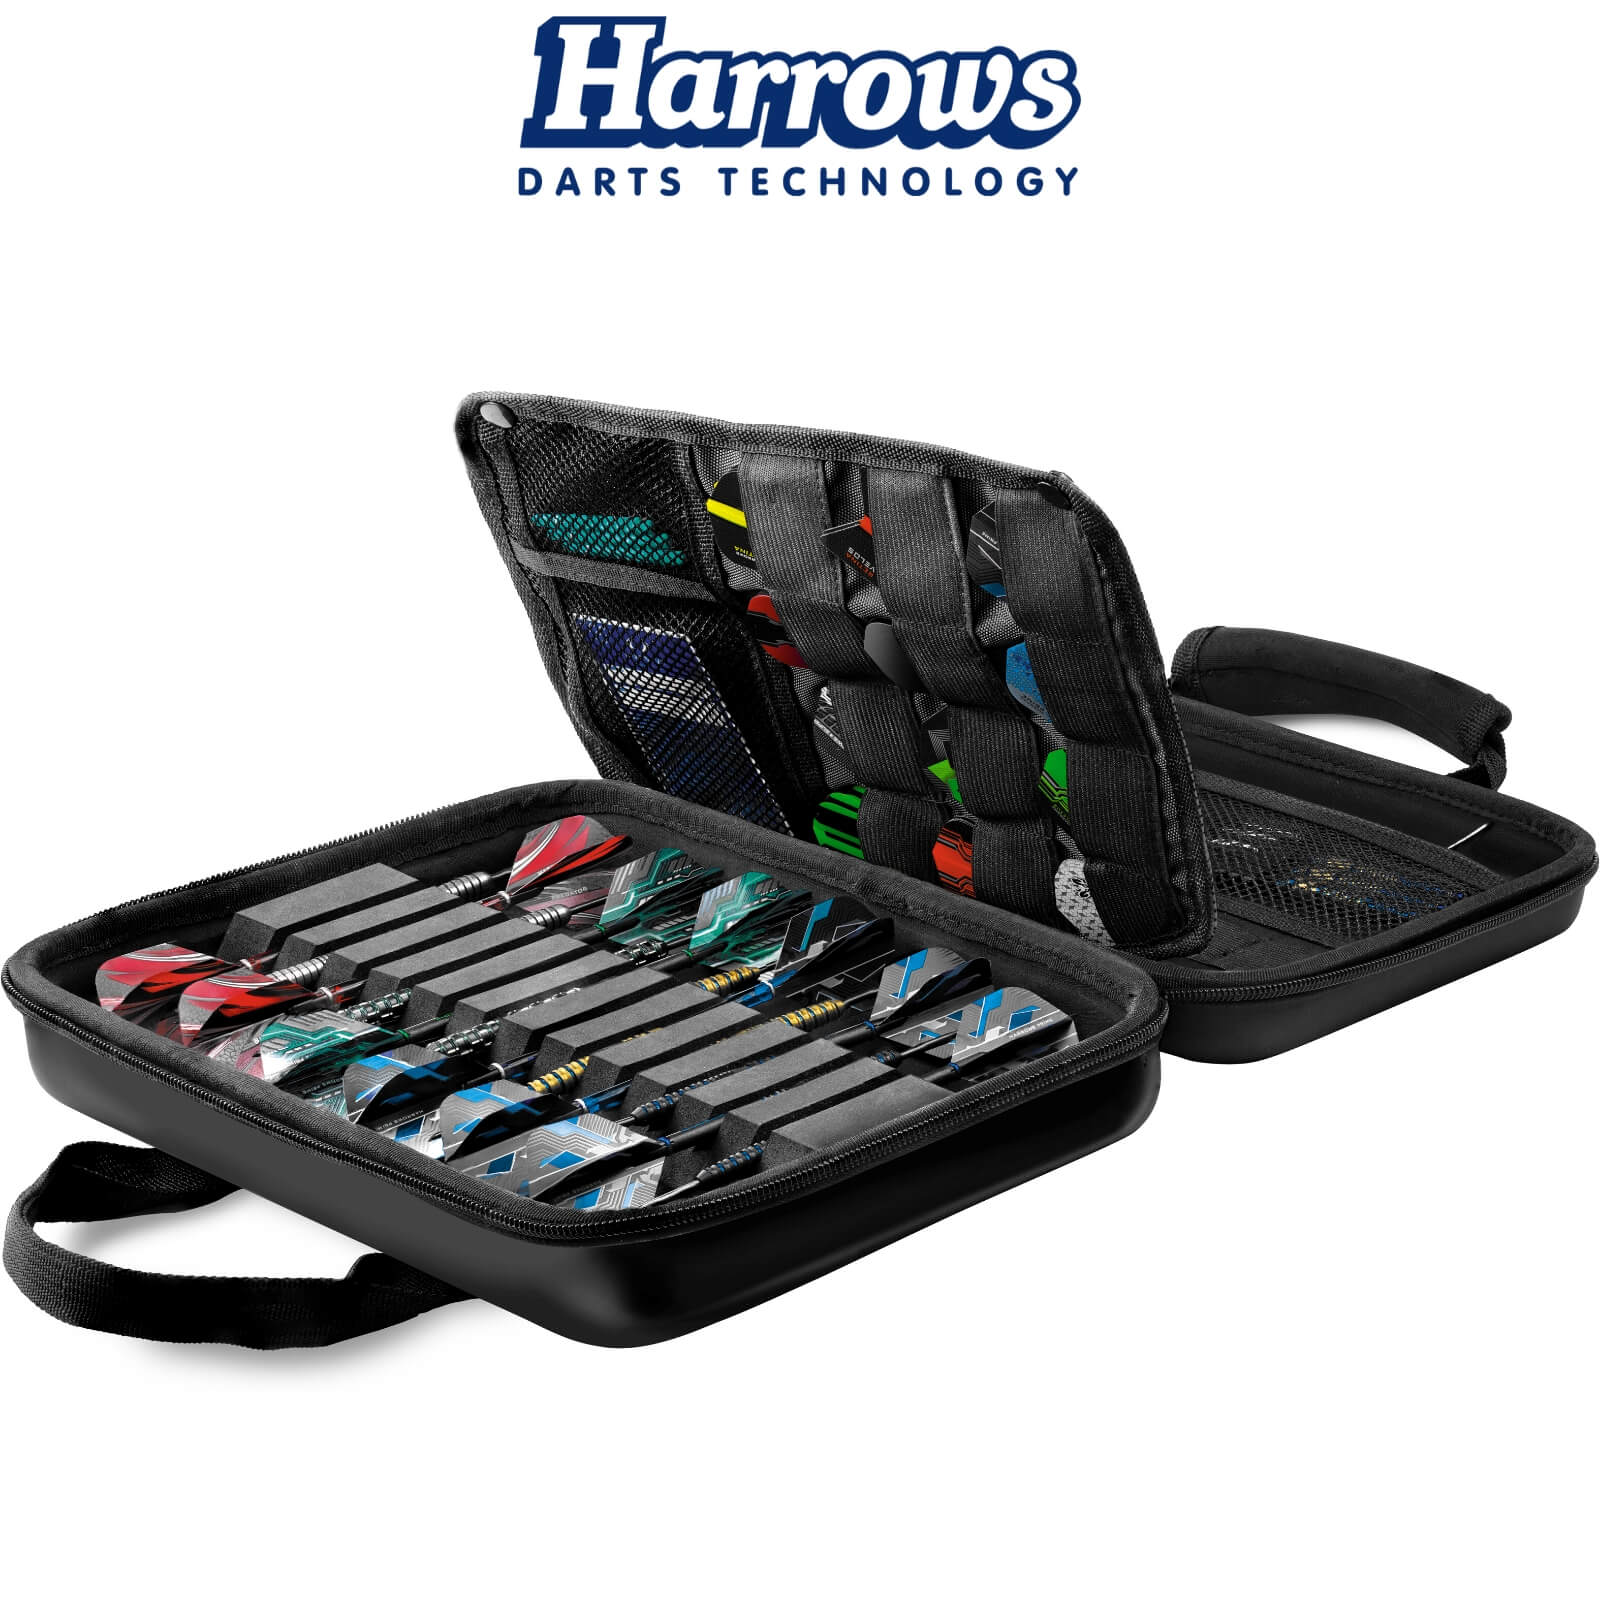 Dart Cases - Harrows - Imperial Large Darts Case